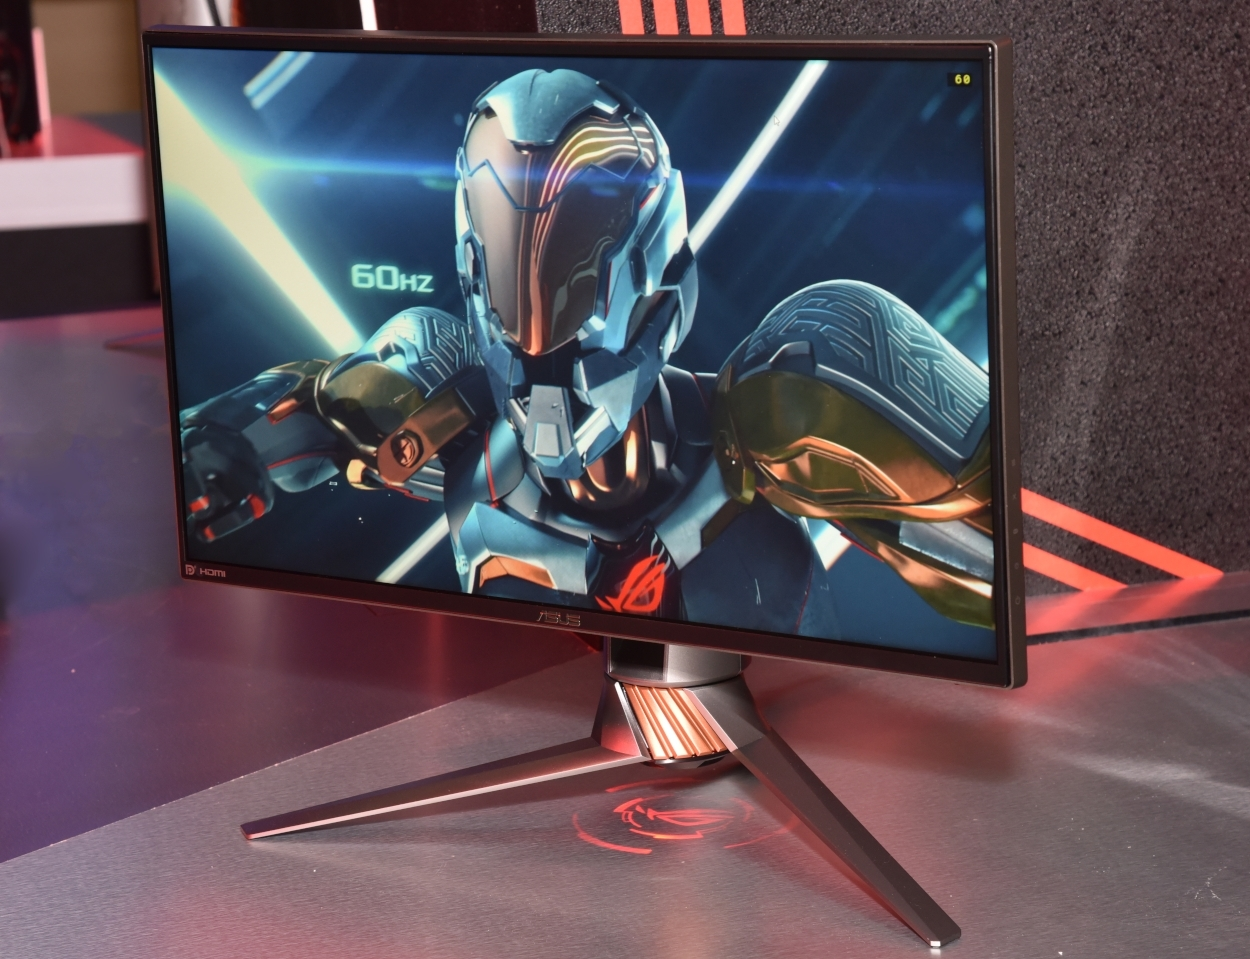 ASUS reveal their ROG Swift PG258Q 240Hz gaming monitor